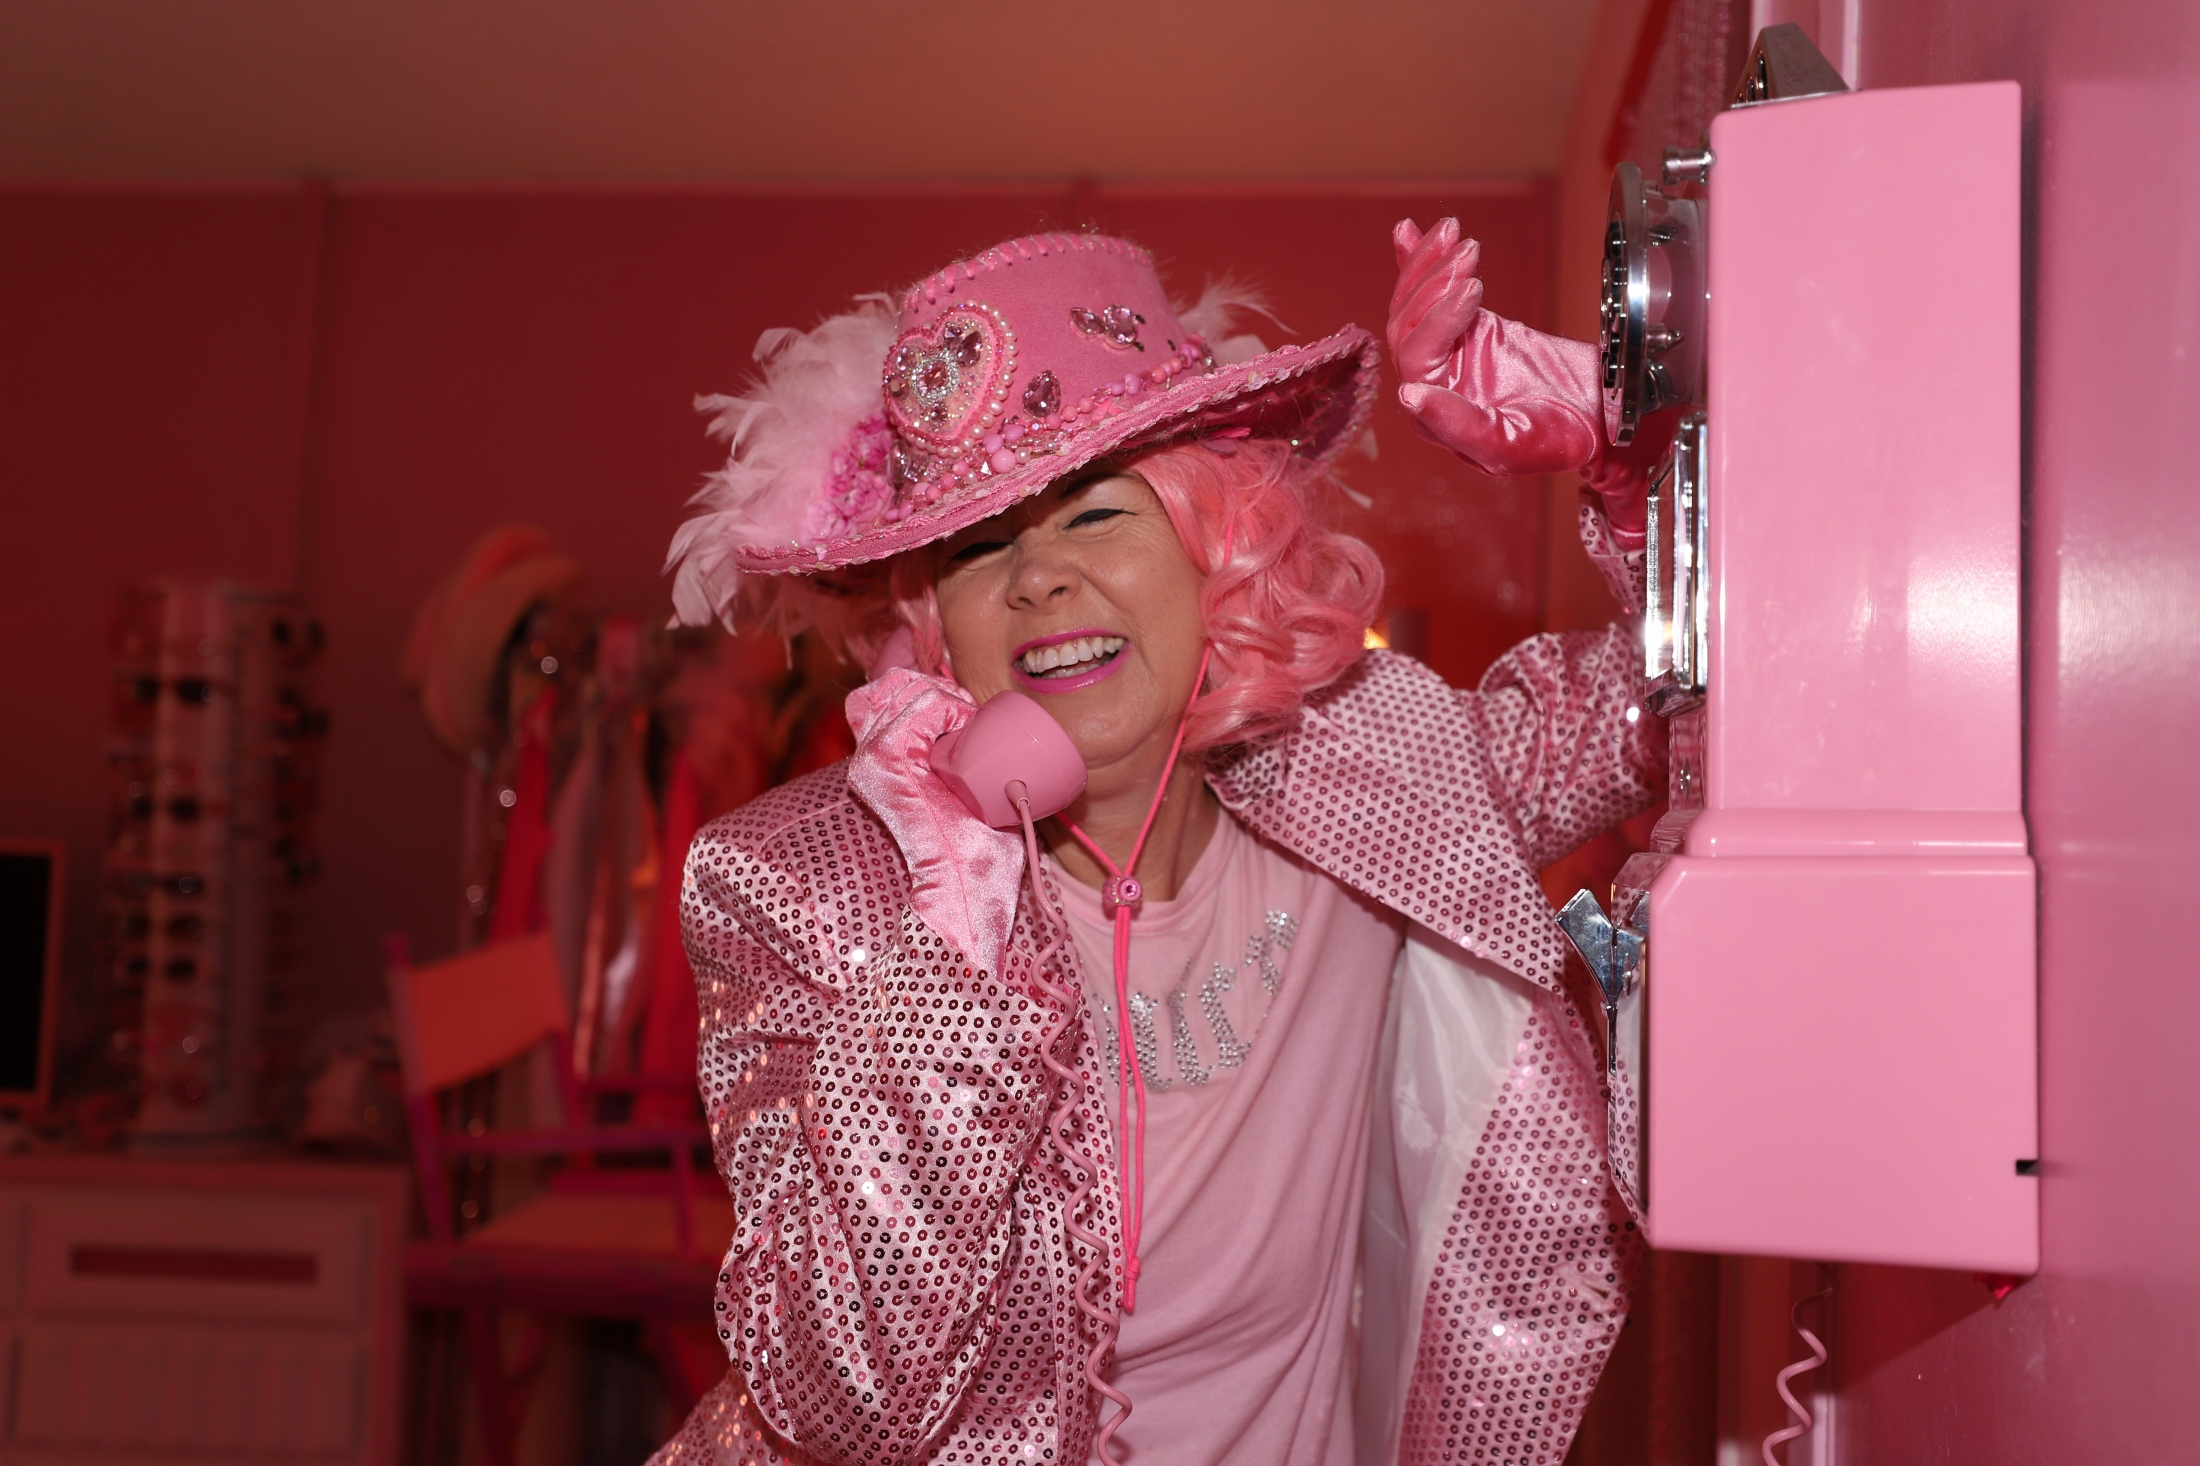 Art and Documentary Photography - Loading Silva_Pink_Lady_of_Hollywood_4607.jpg